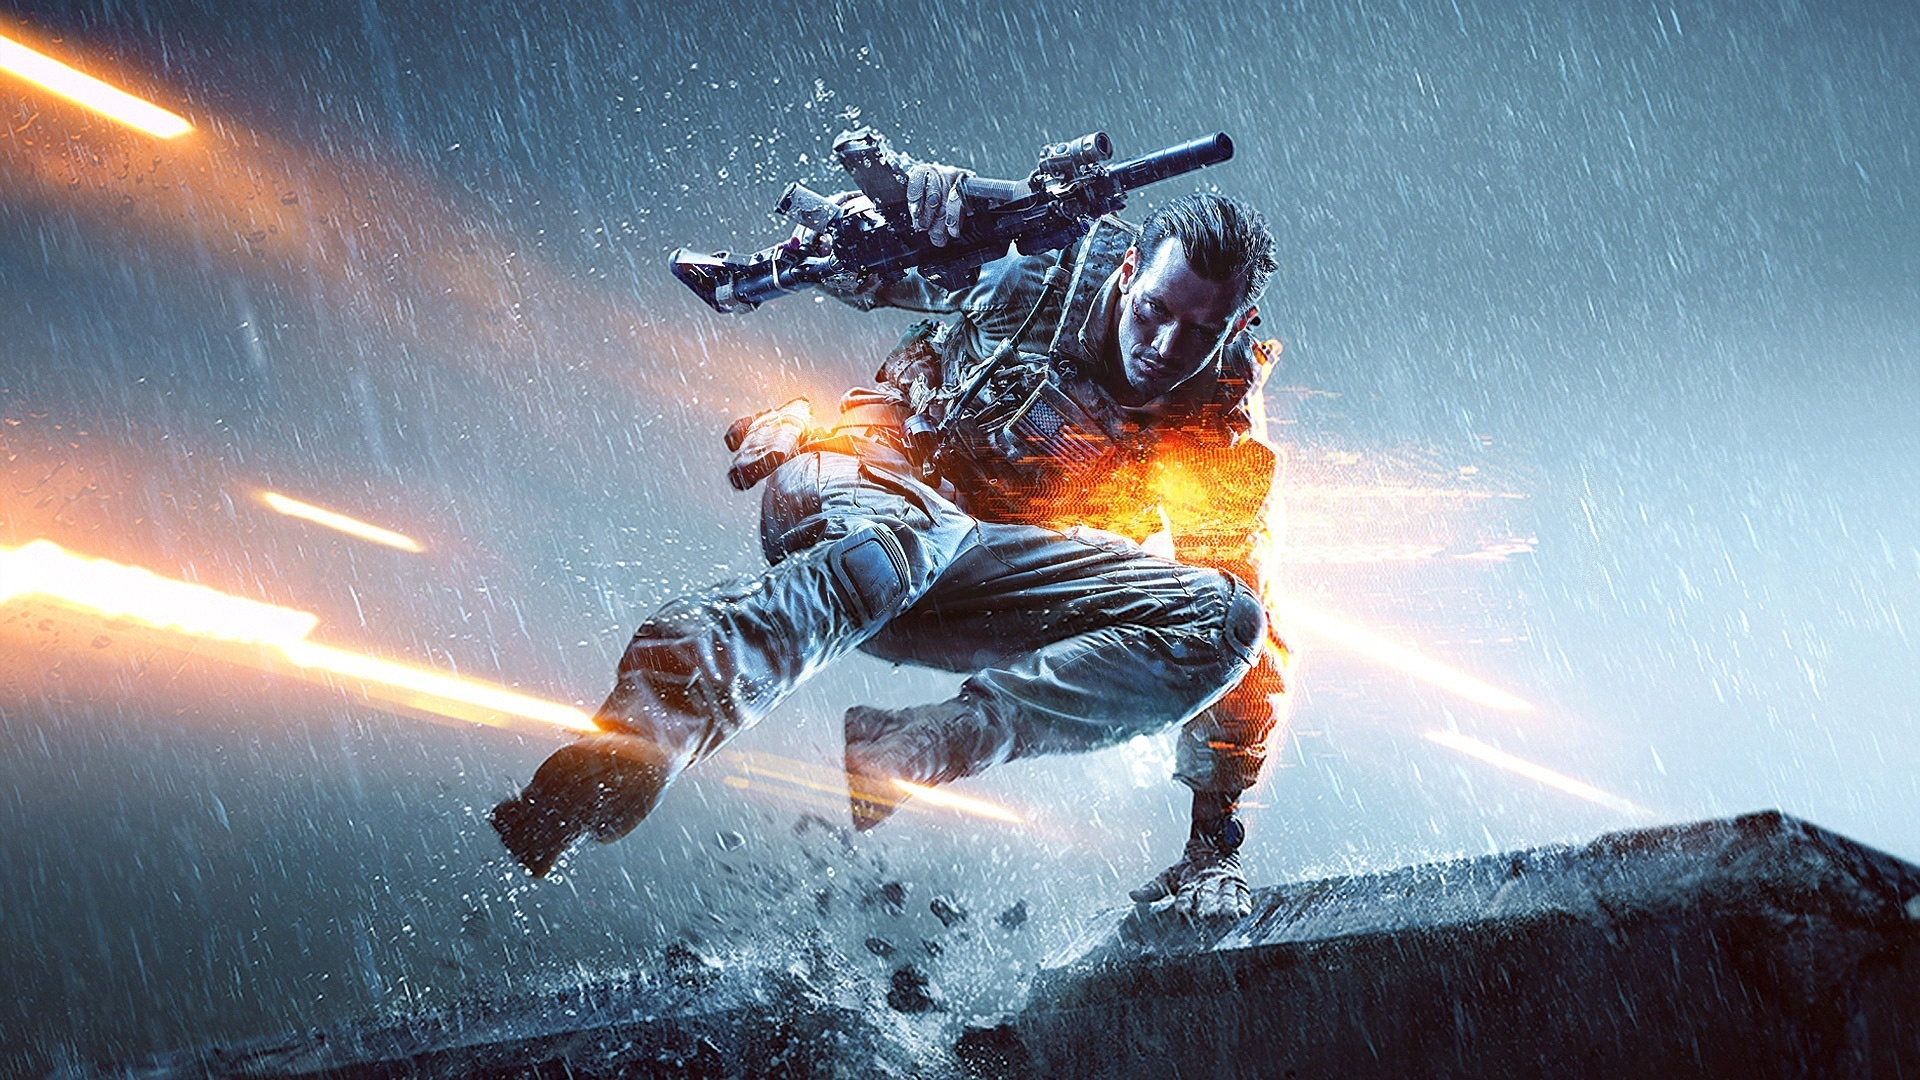 Battlefield 4 2013 Wallpapers - 1920x1080 - 846835